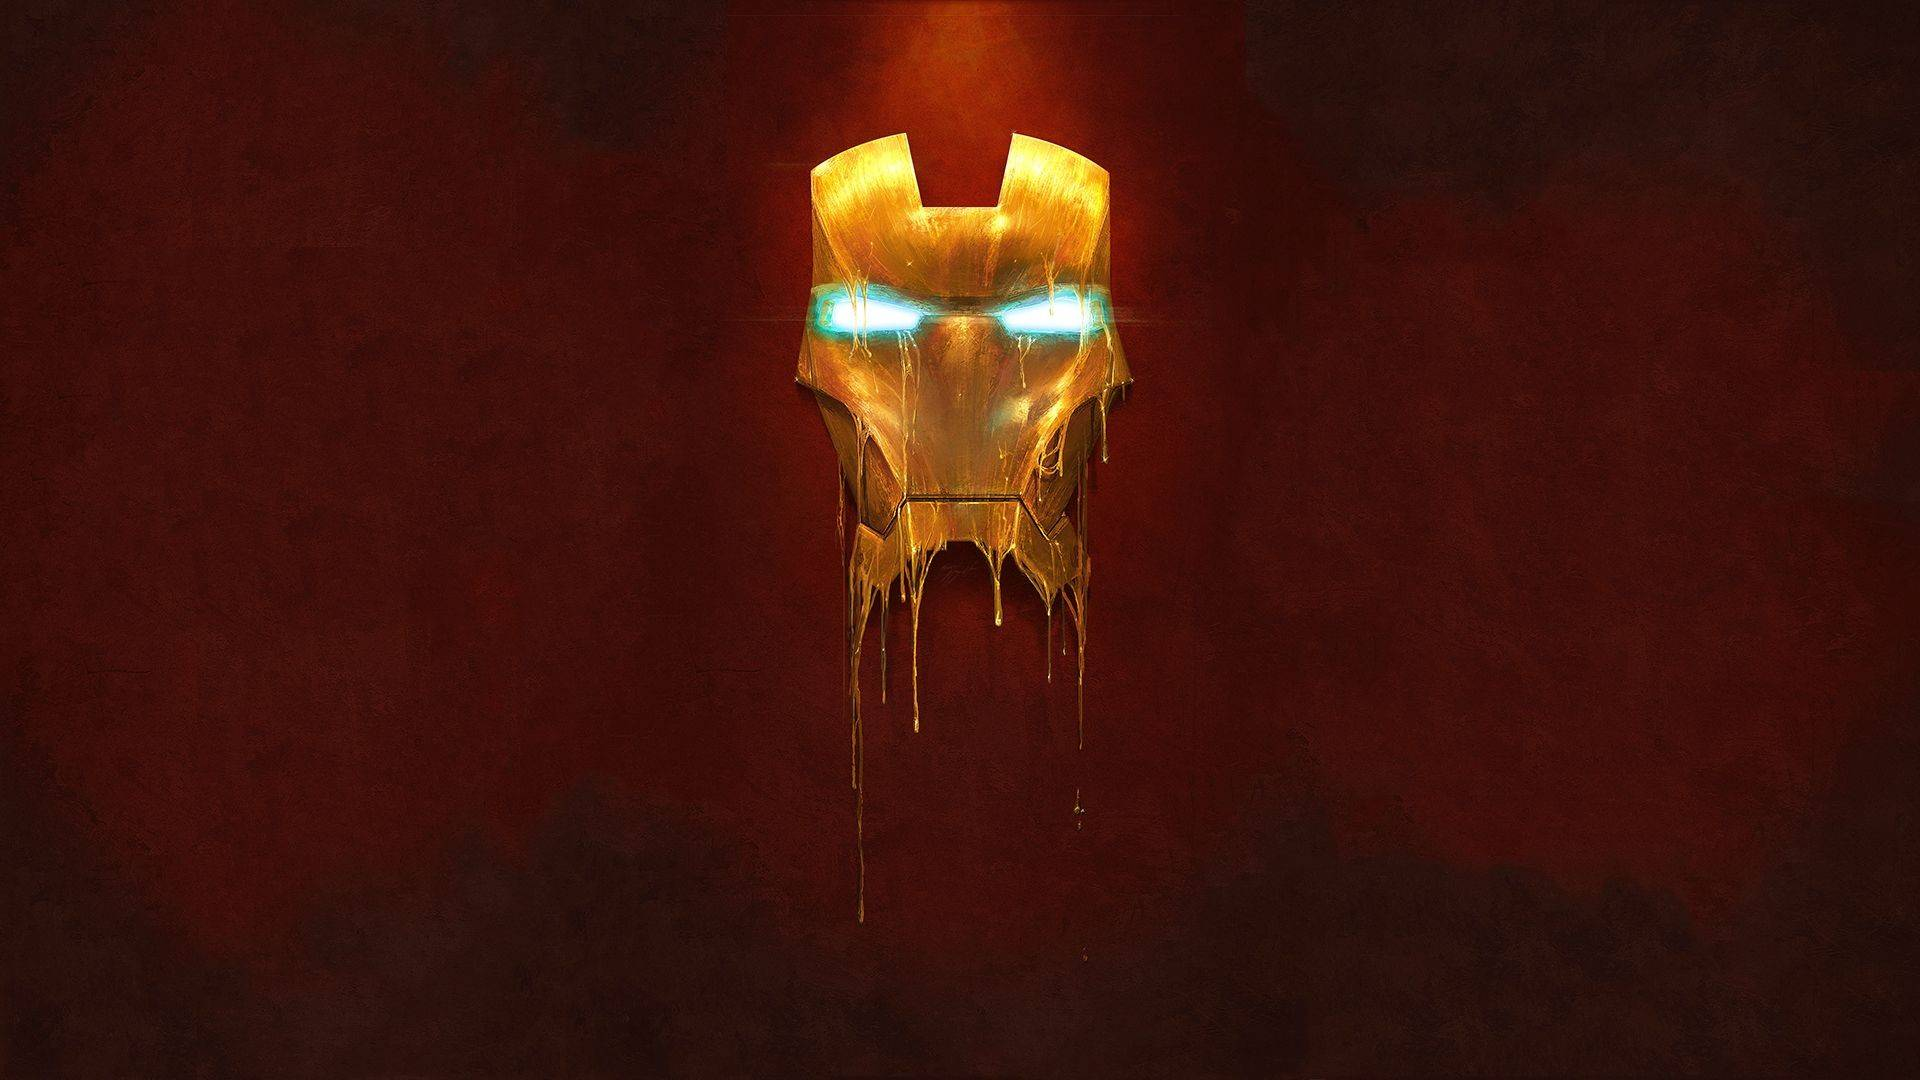 WallpapersWide Download Iron Man Avengers The Movie Full Wallpaper  1920x1080